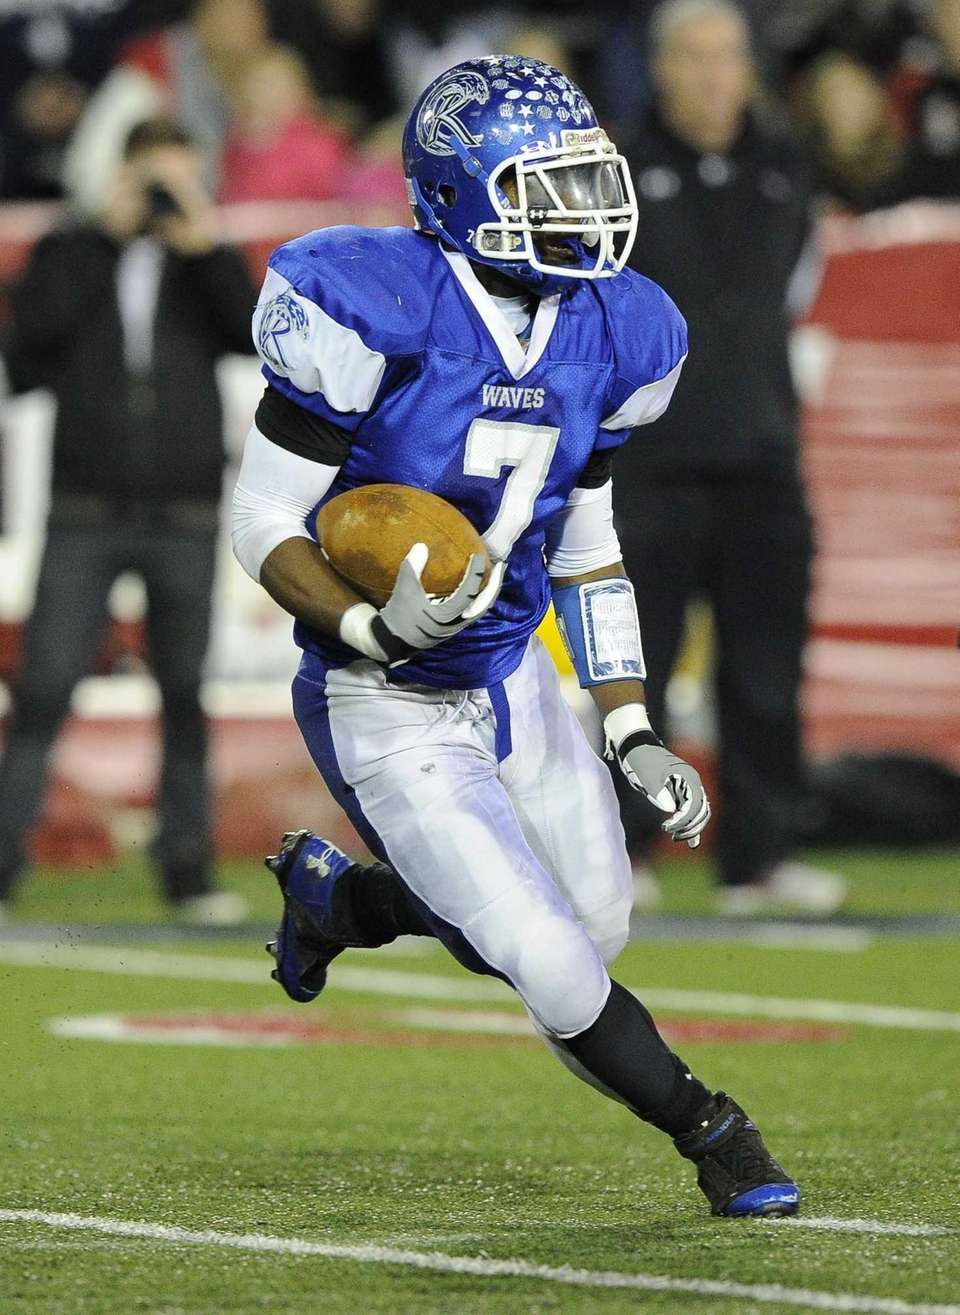 Riverhead's Ryun Moore runs the football against East